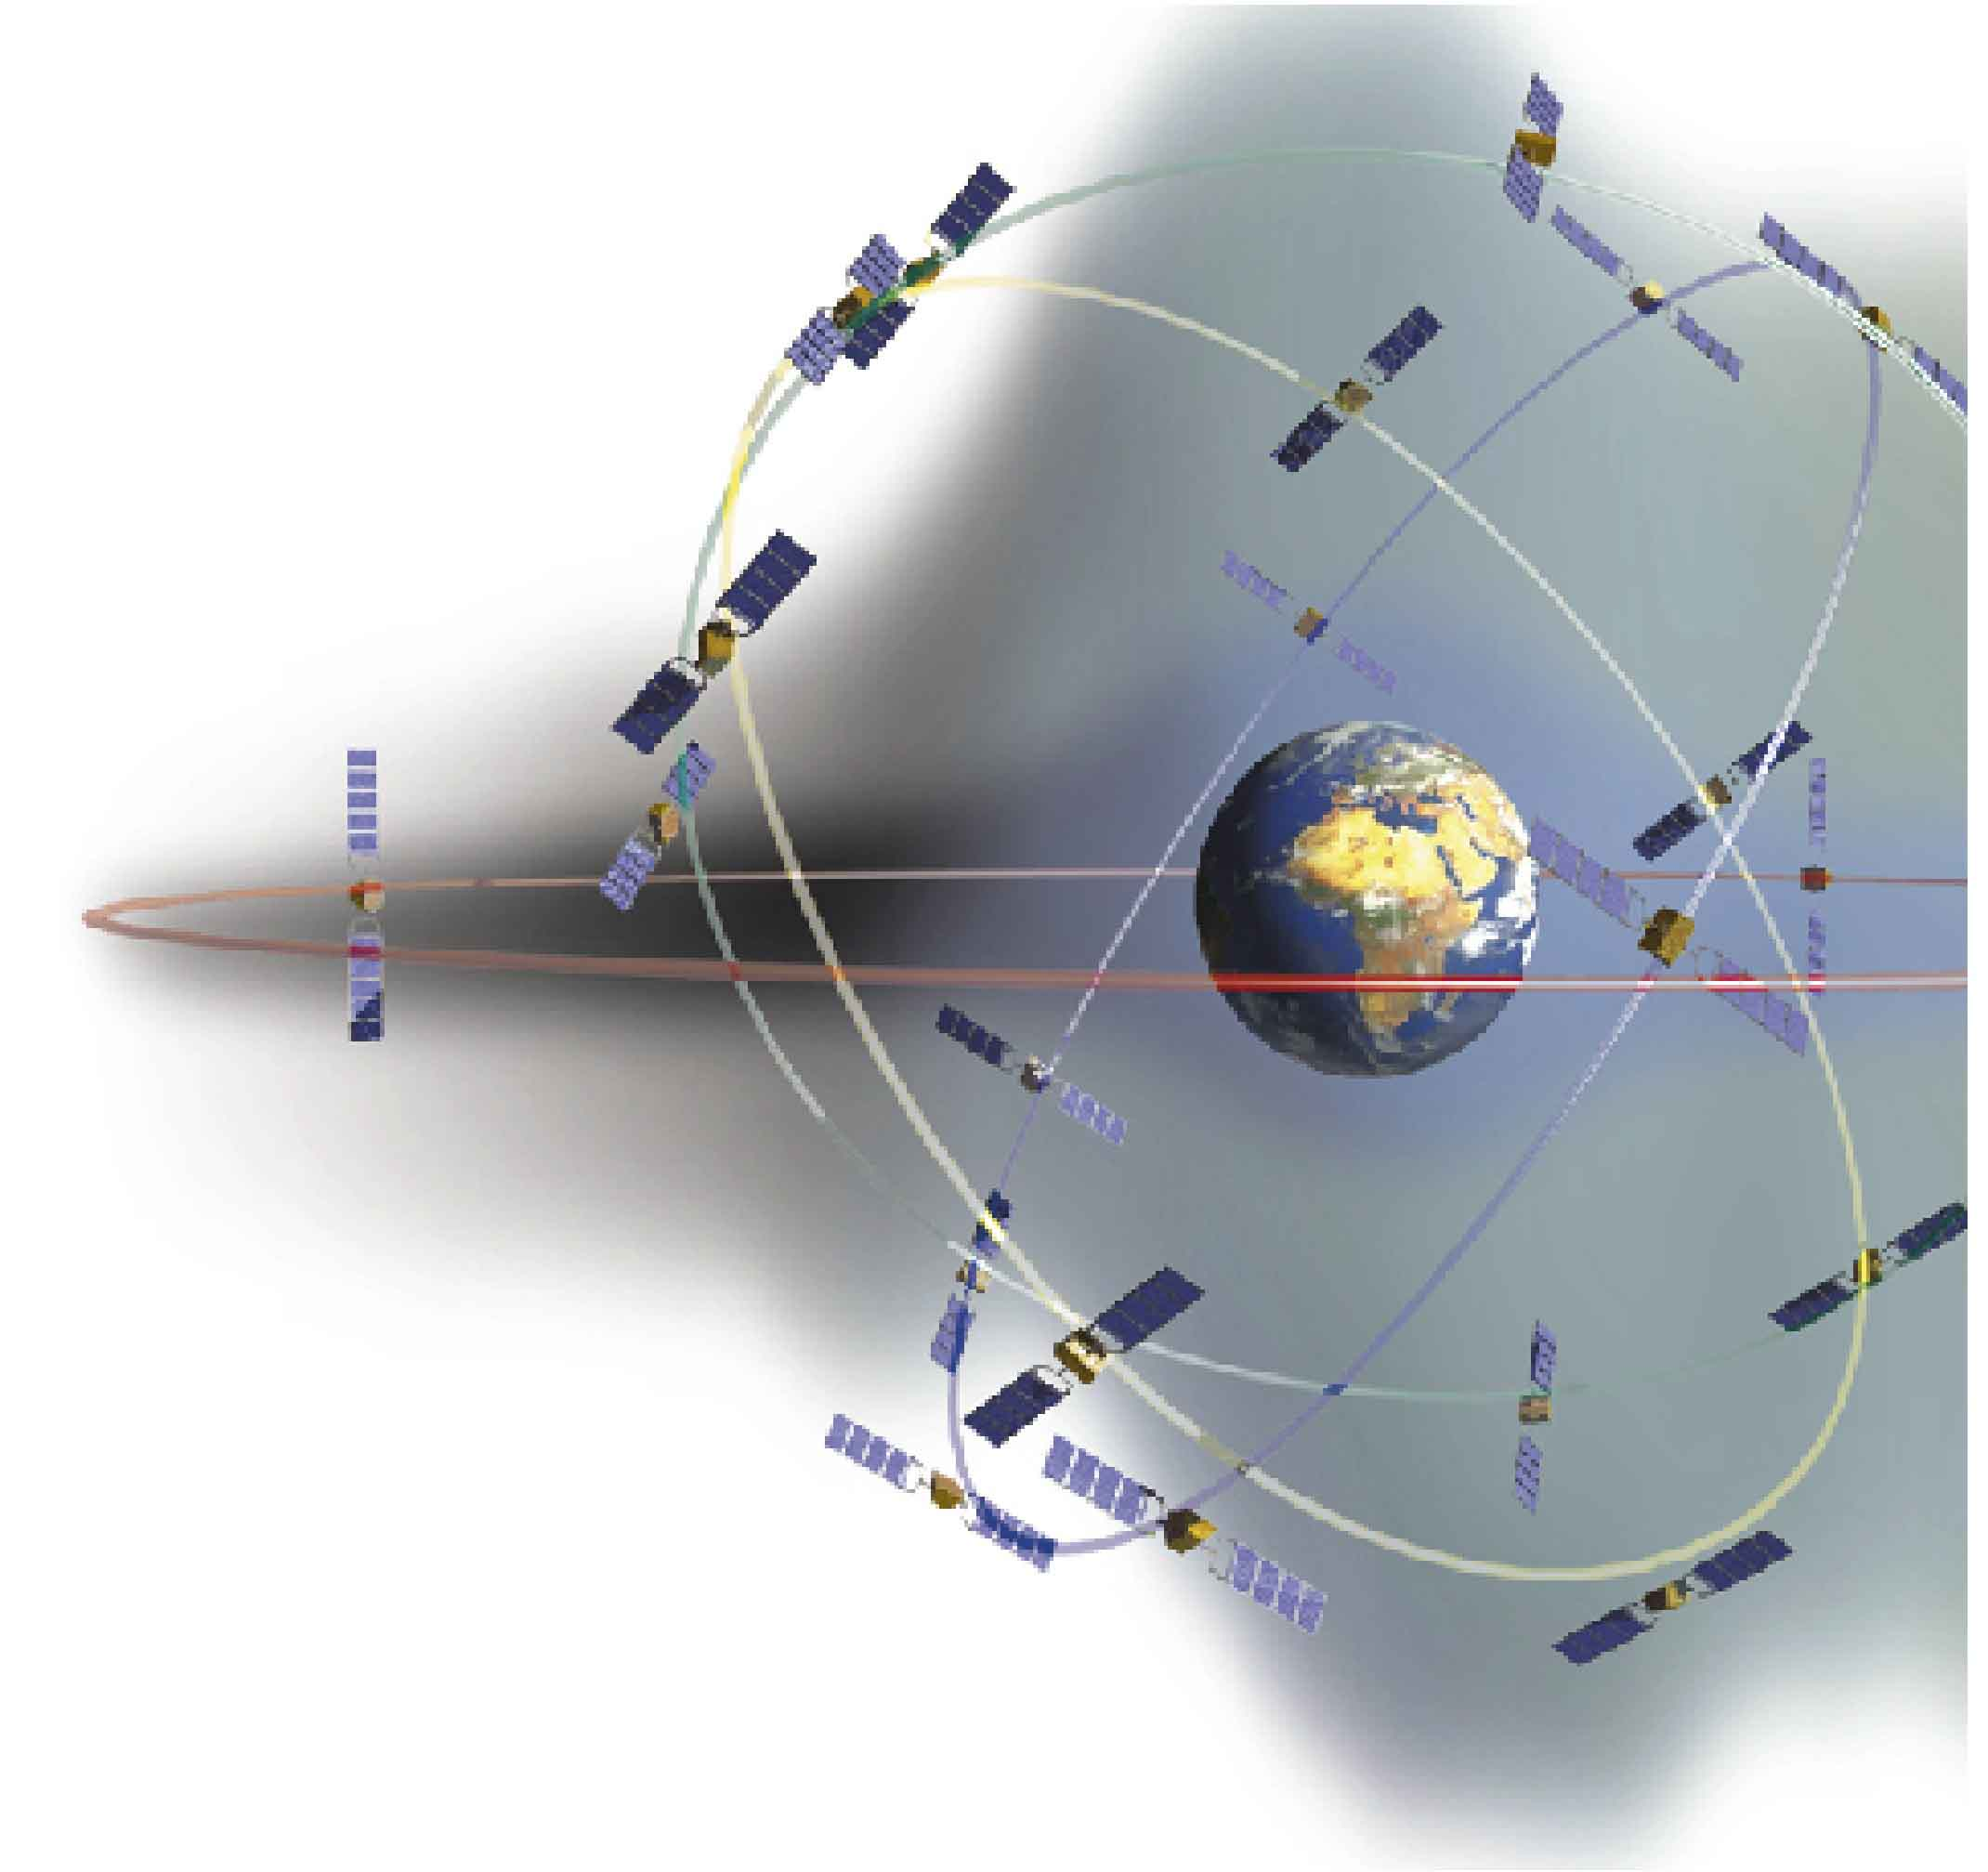 Galileo Program to Announce Key Contracts Soon